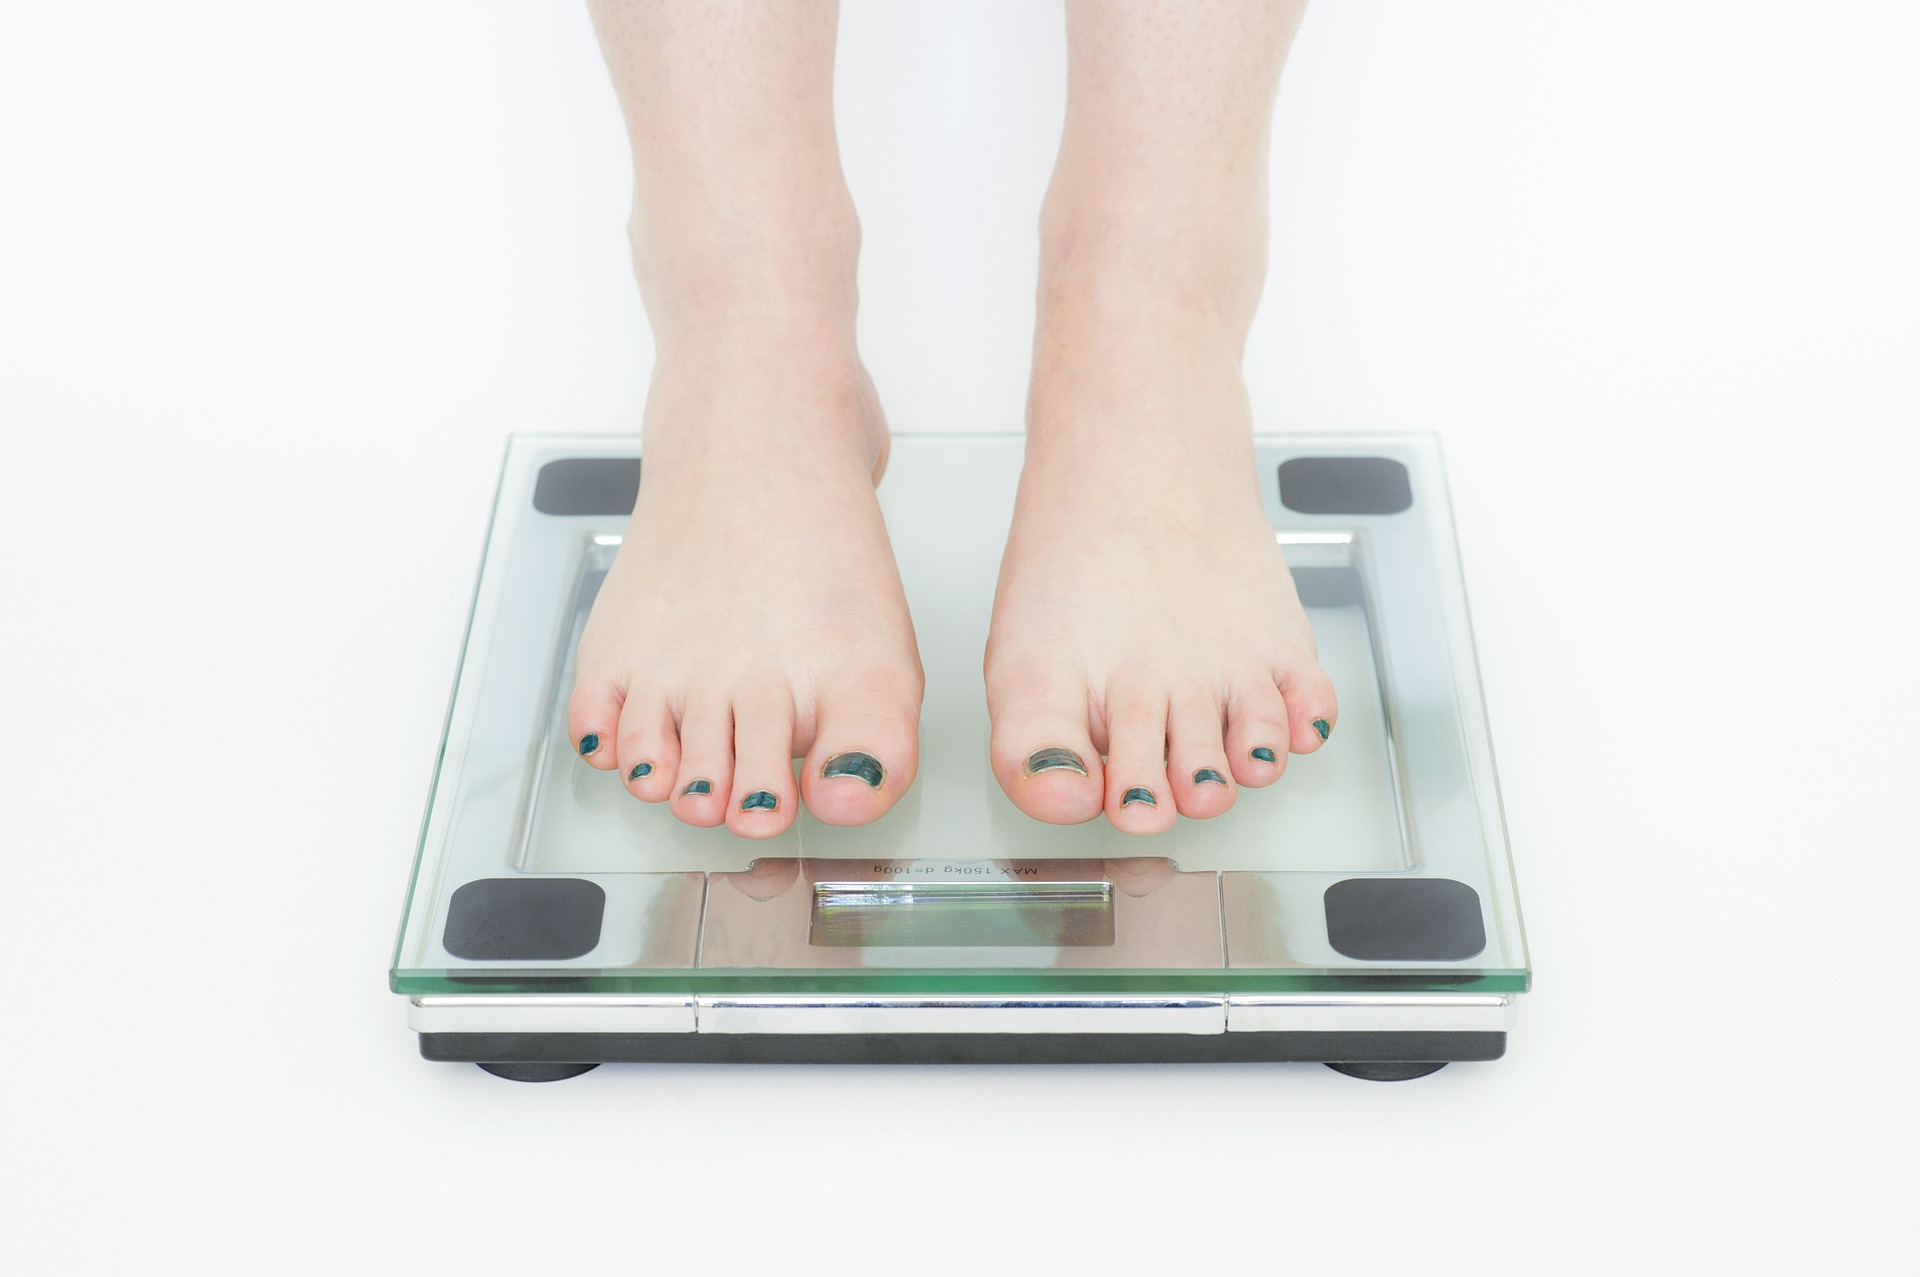 Weight loss - getting back on track